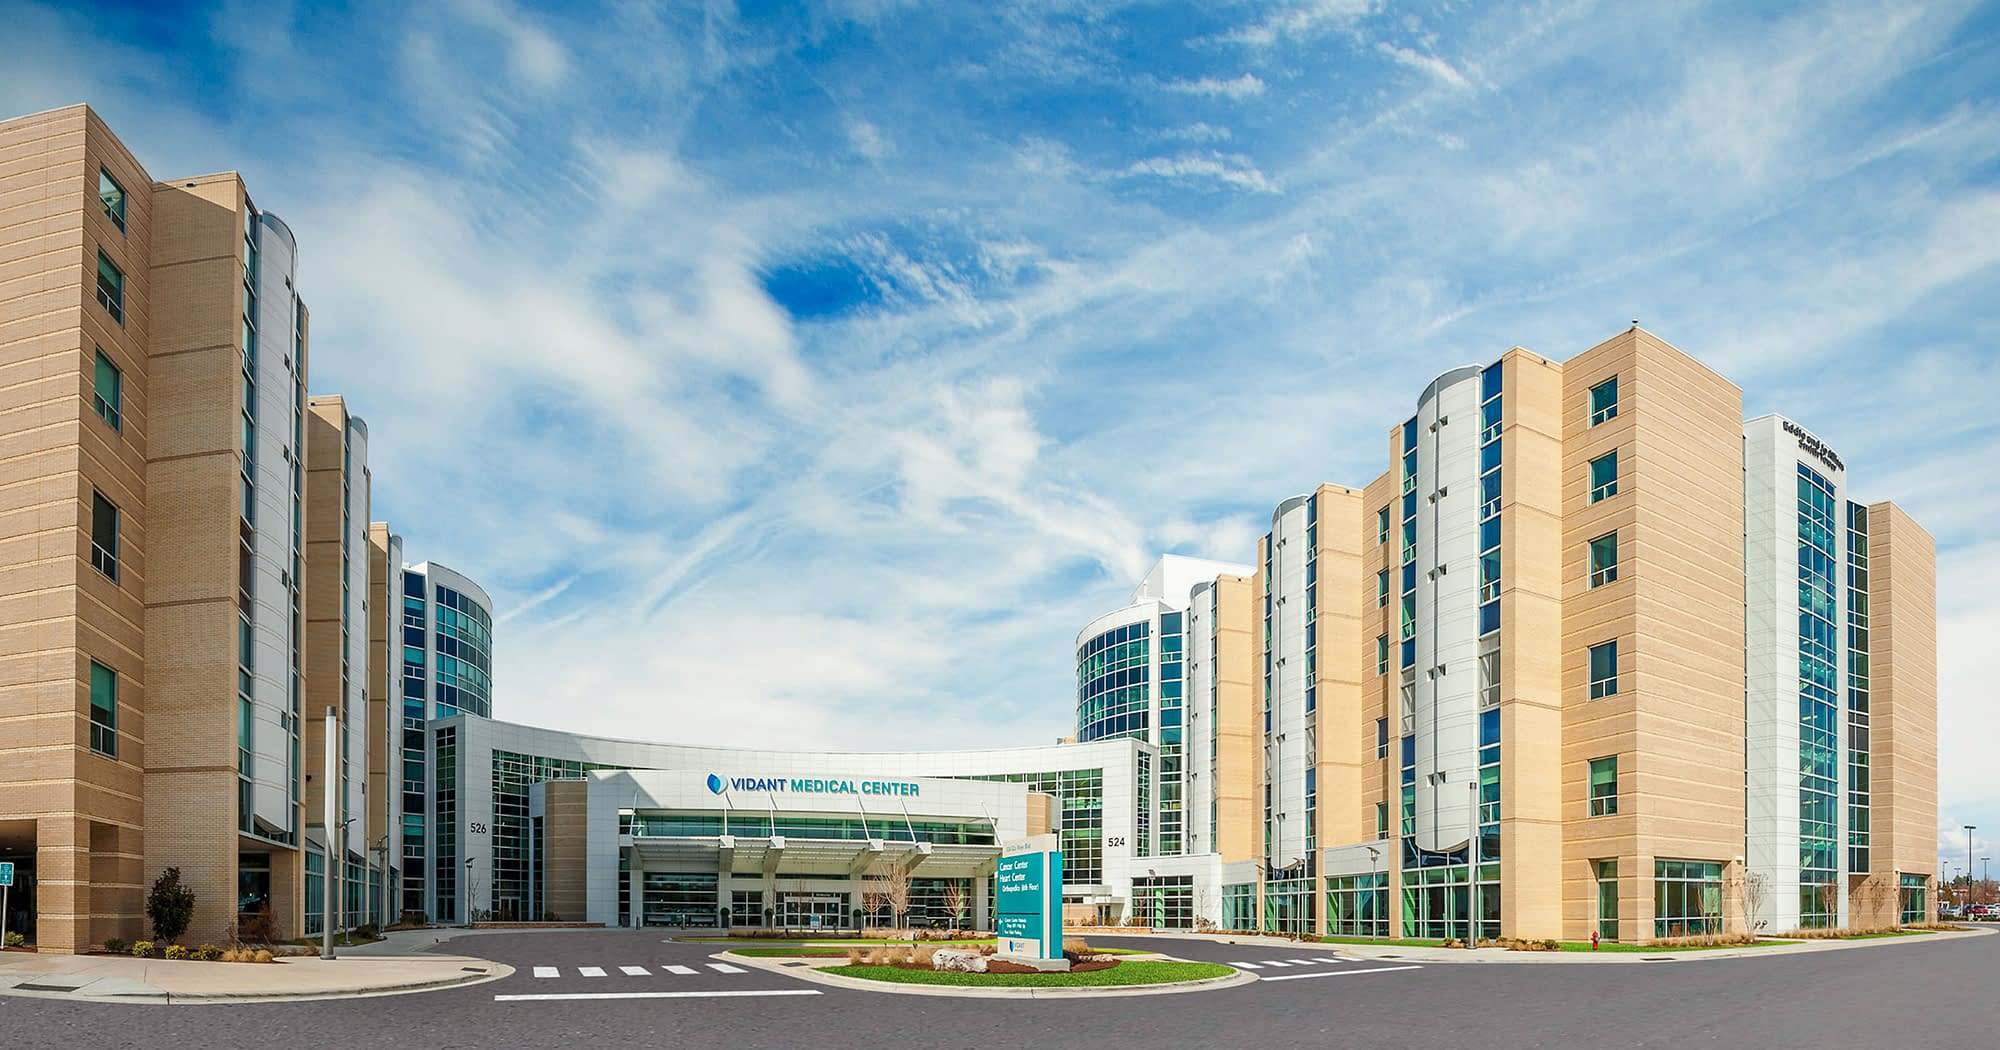 An image of the front drive of the Vidant Hospital in Greenville, North Carolina.